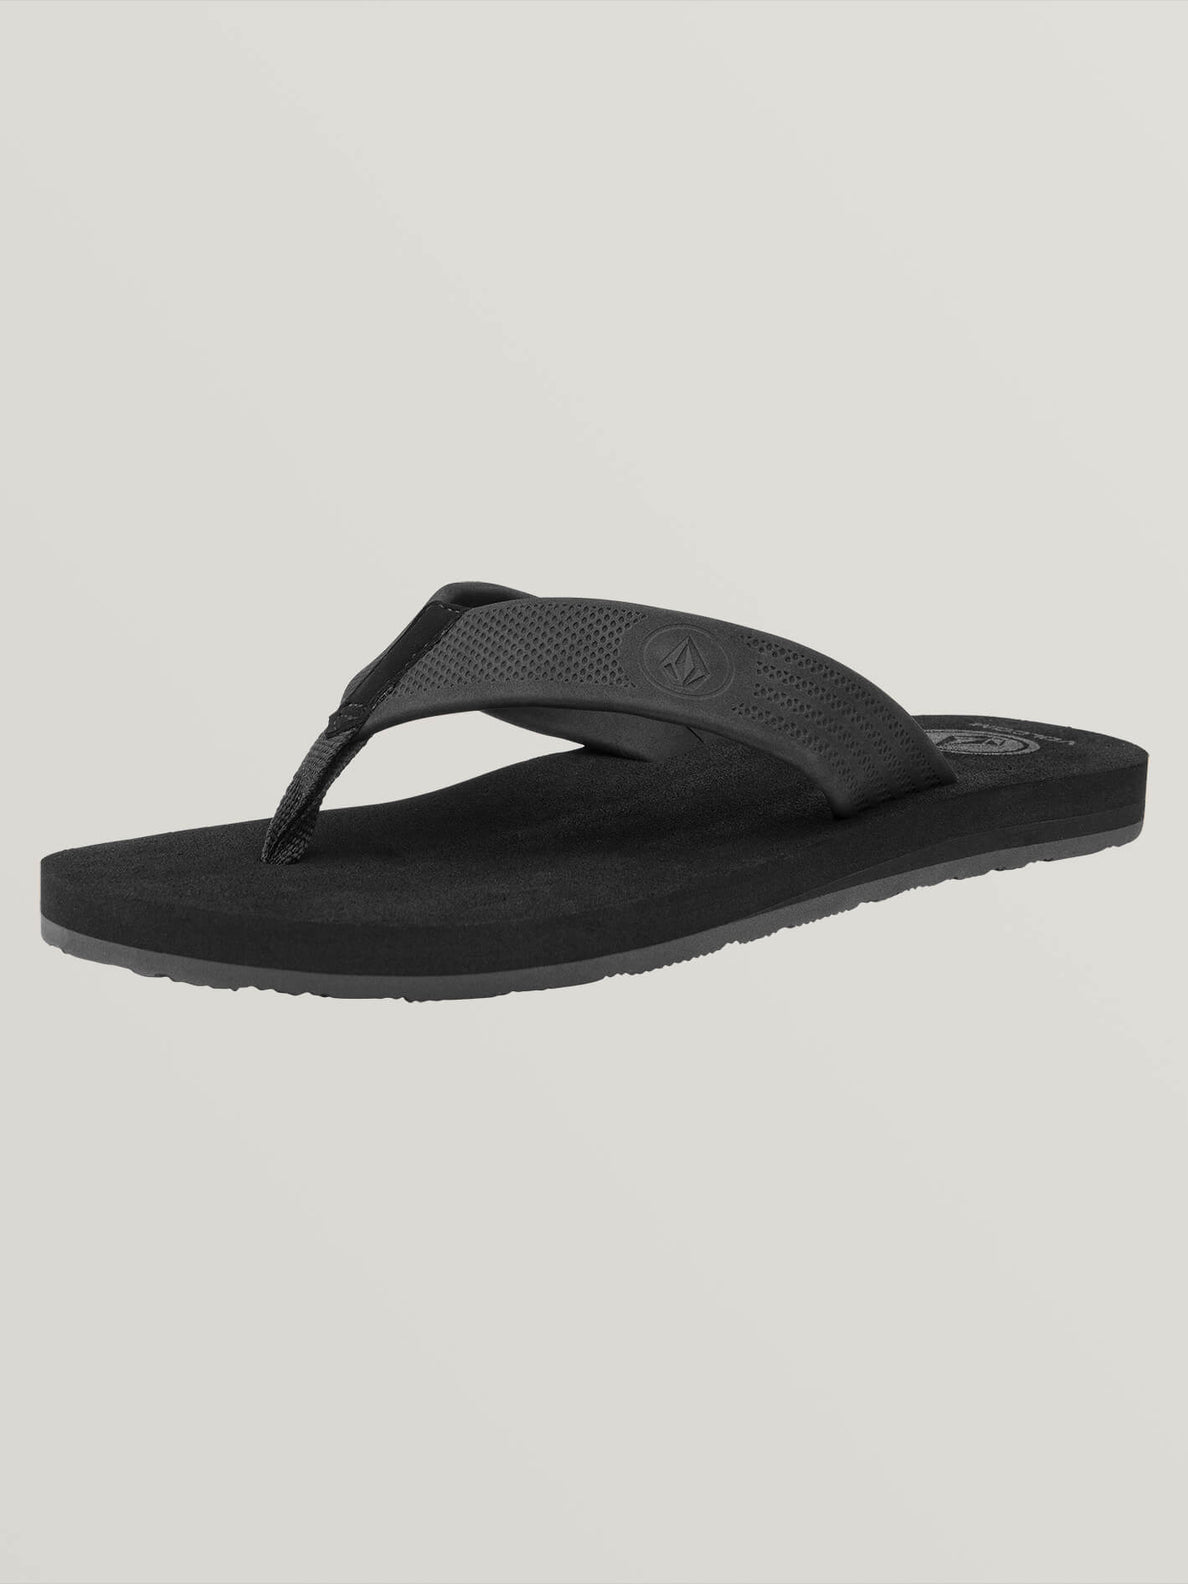 Daycation Sandal - Black Destructo (V0811773_BKD) [B]